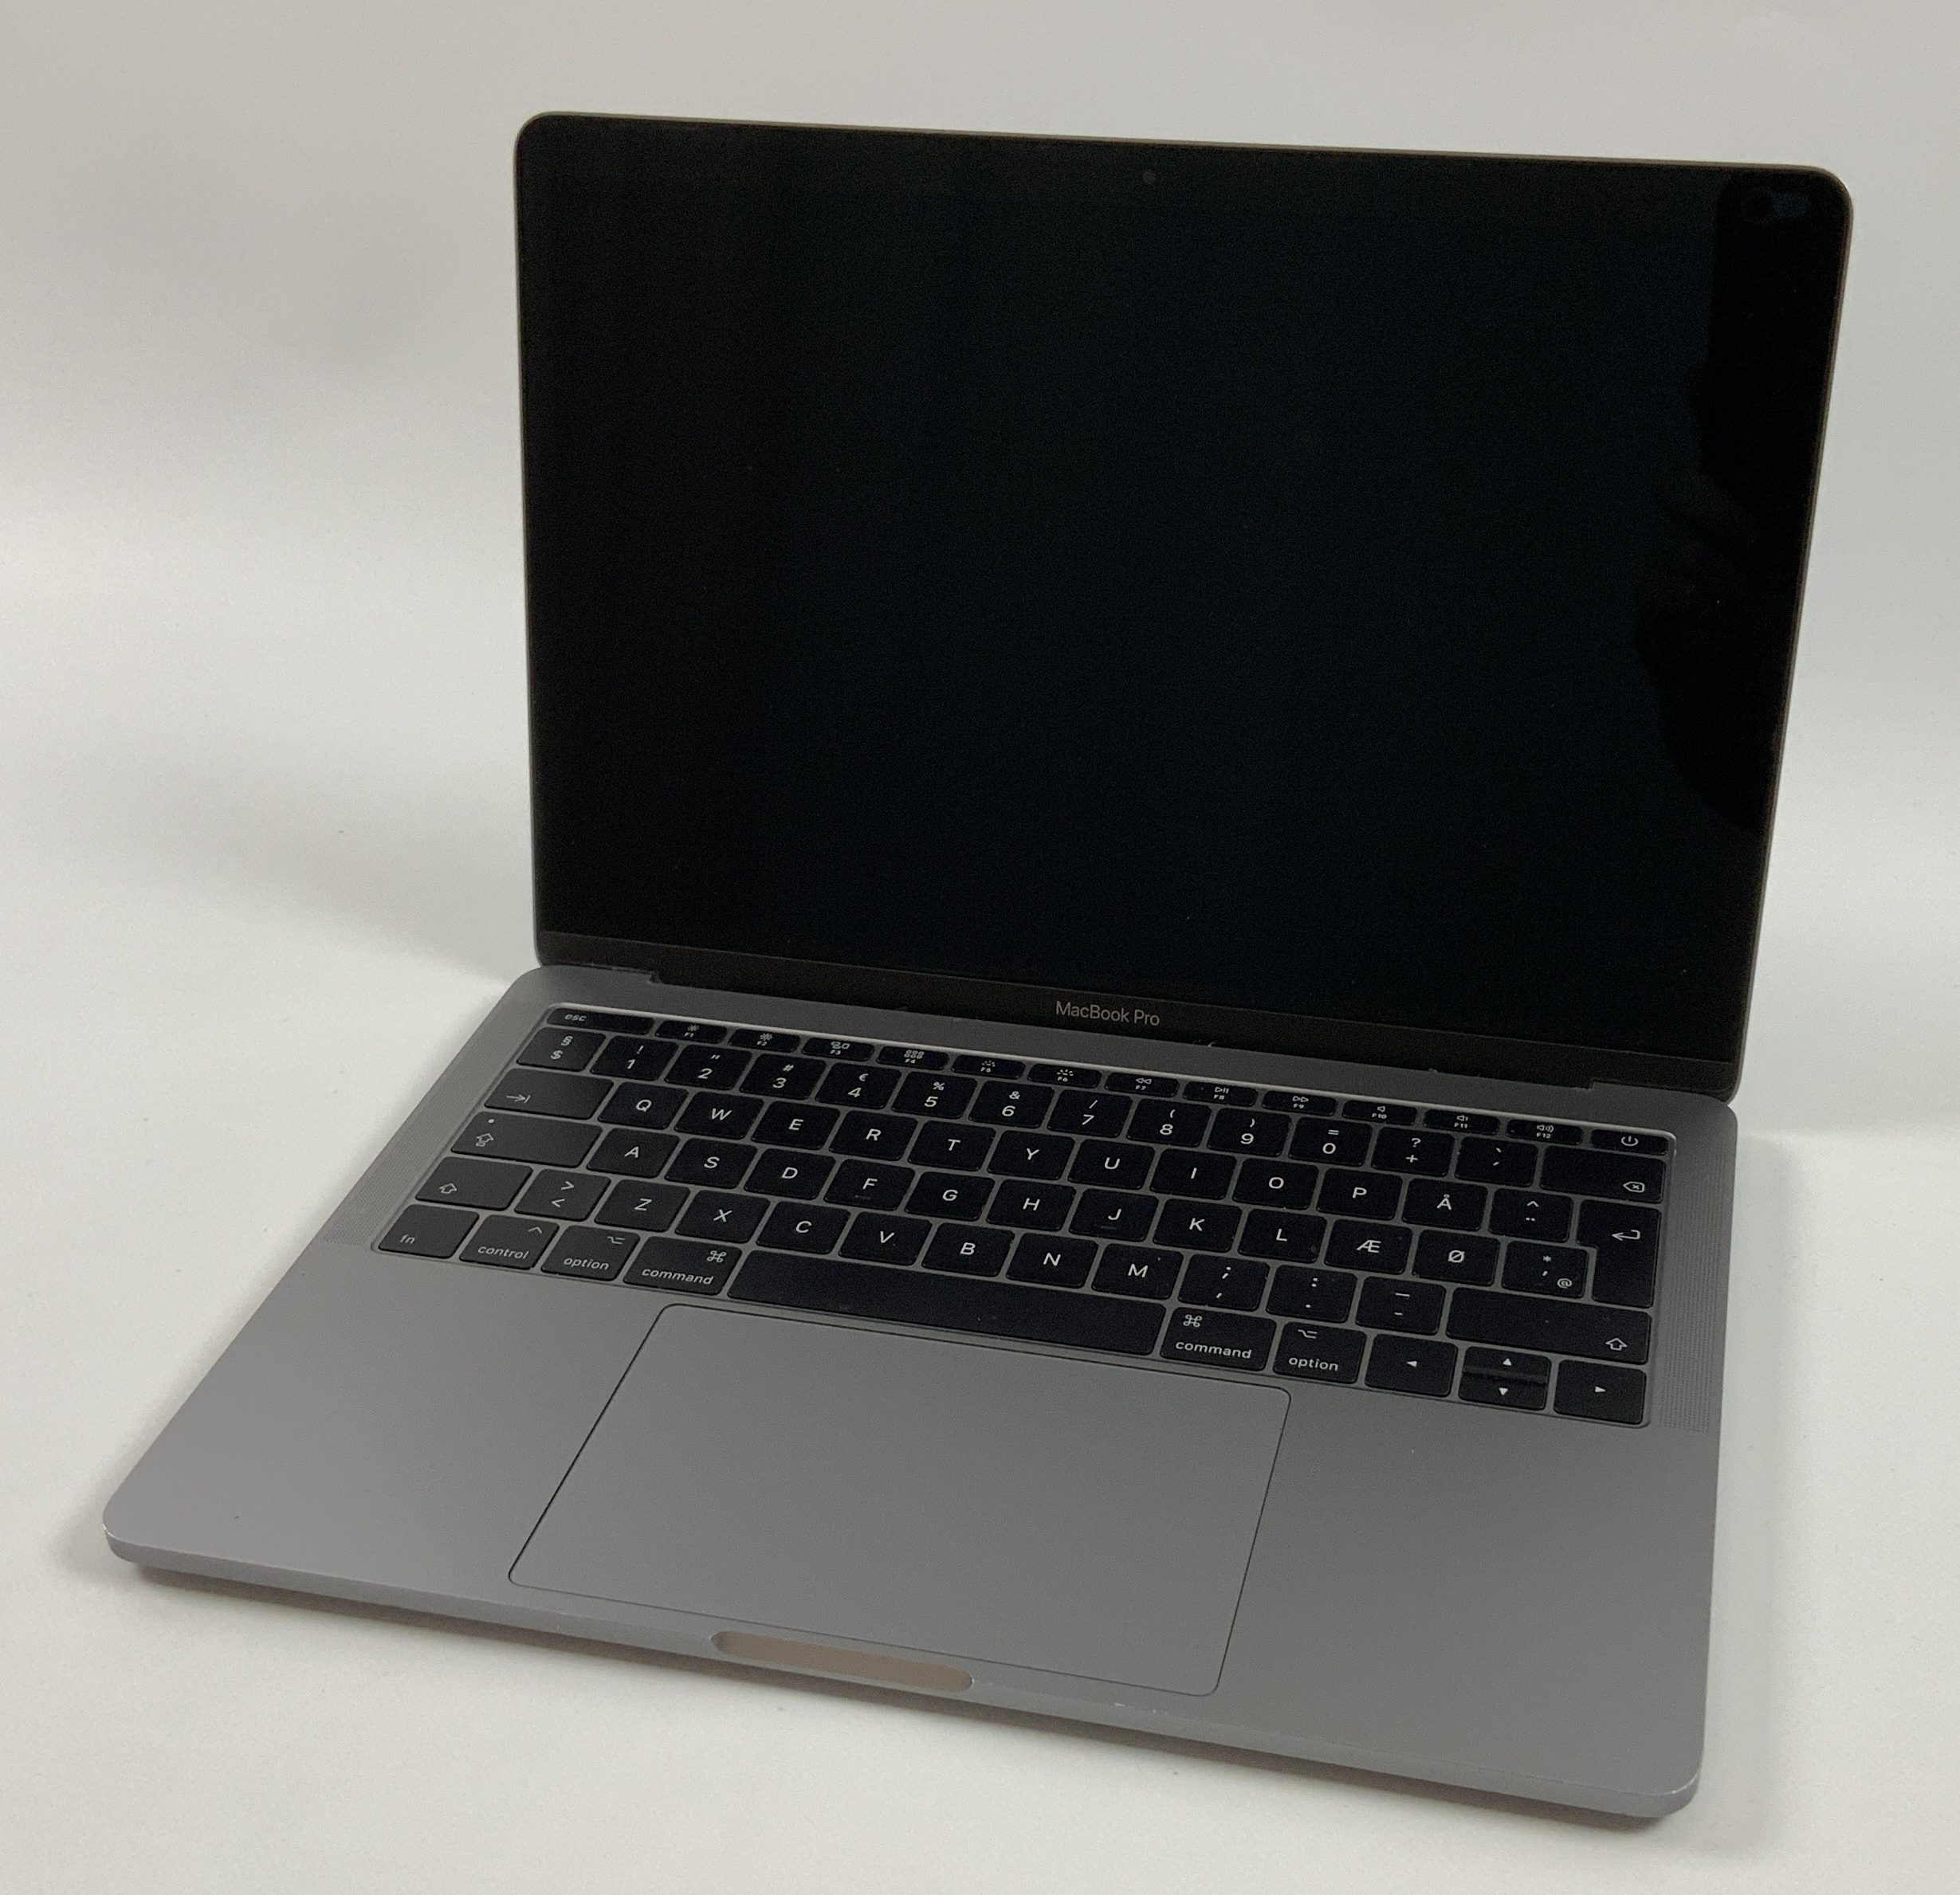 "MacBook Pro 13"" 2TBT Mid 2017 (Intel Core i5 2.3 GHz 8 GB RAM 128 GB SSD), Space Gray, Intel Core i5 2.3 GHz, 8 GB RAM, 128 GB SSD, bild 1"